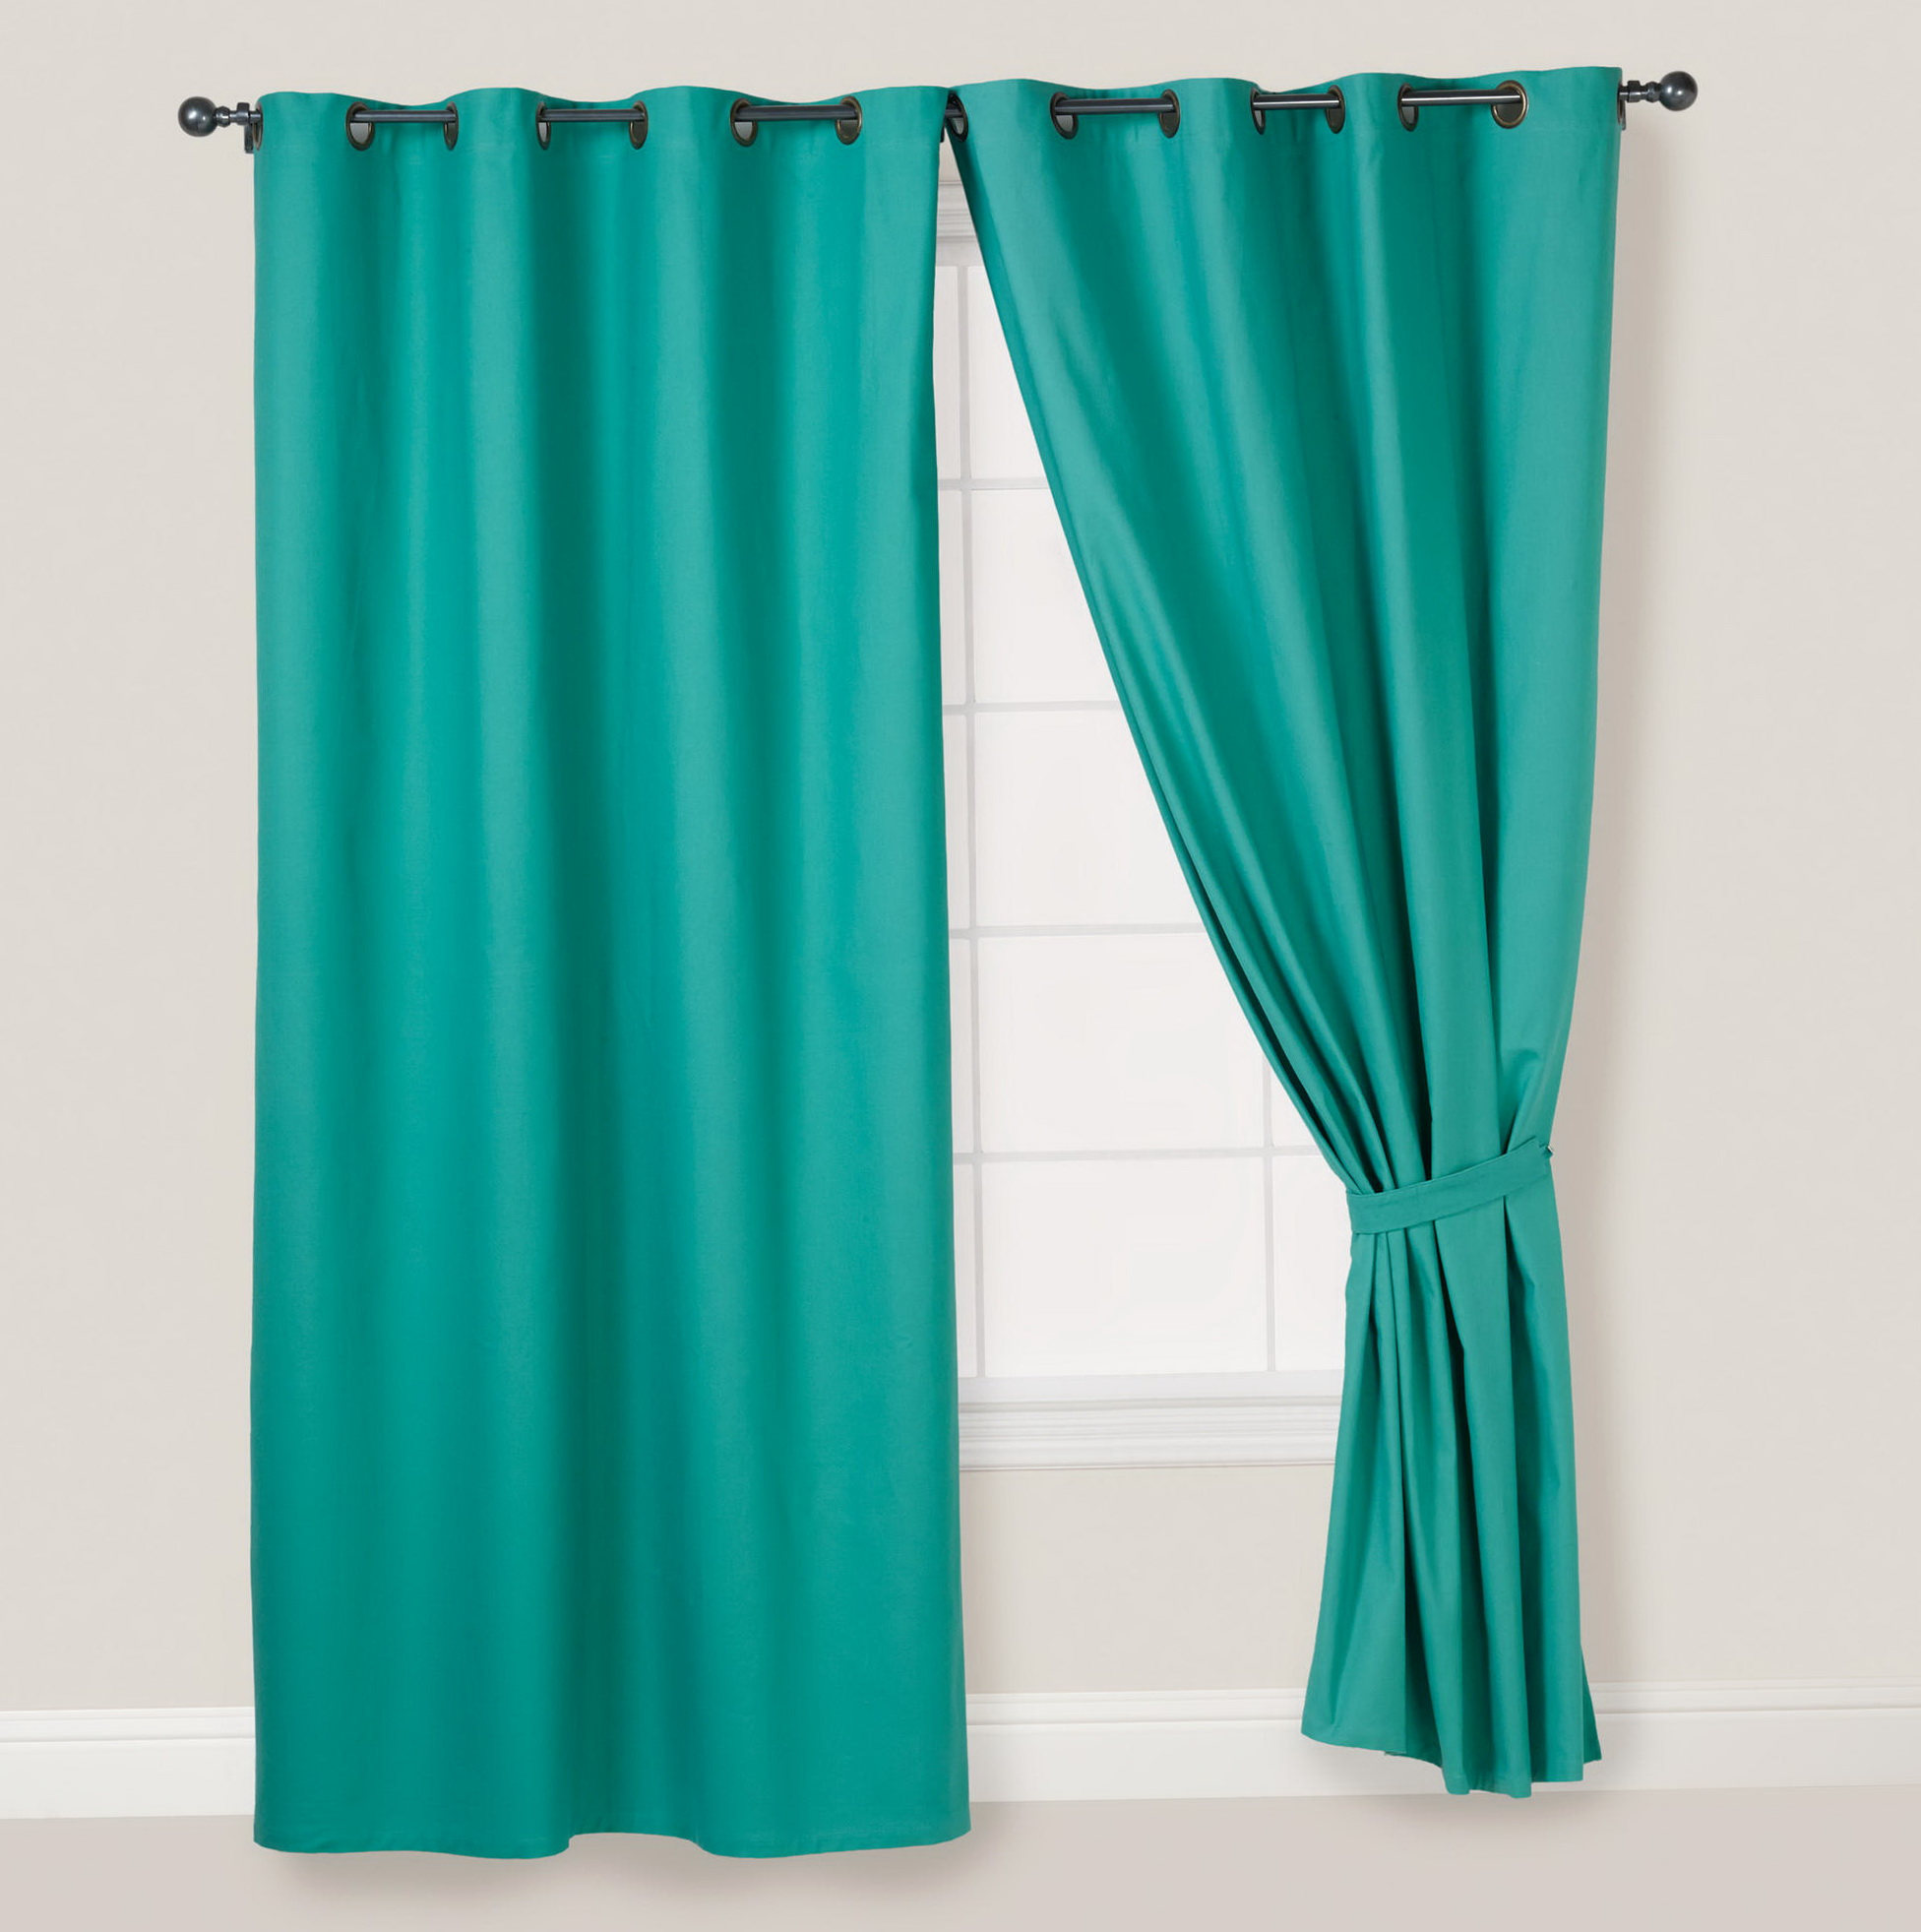 Best Place To Buy Curtains Cheap Home Design Ideas